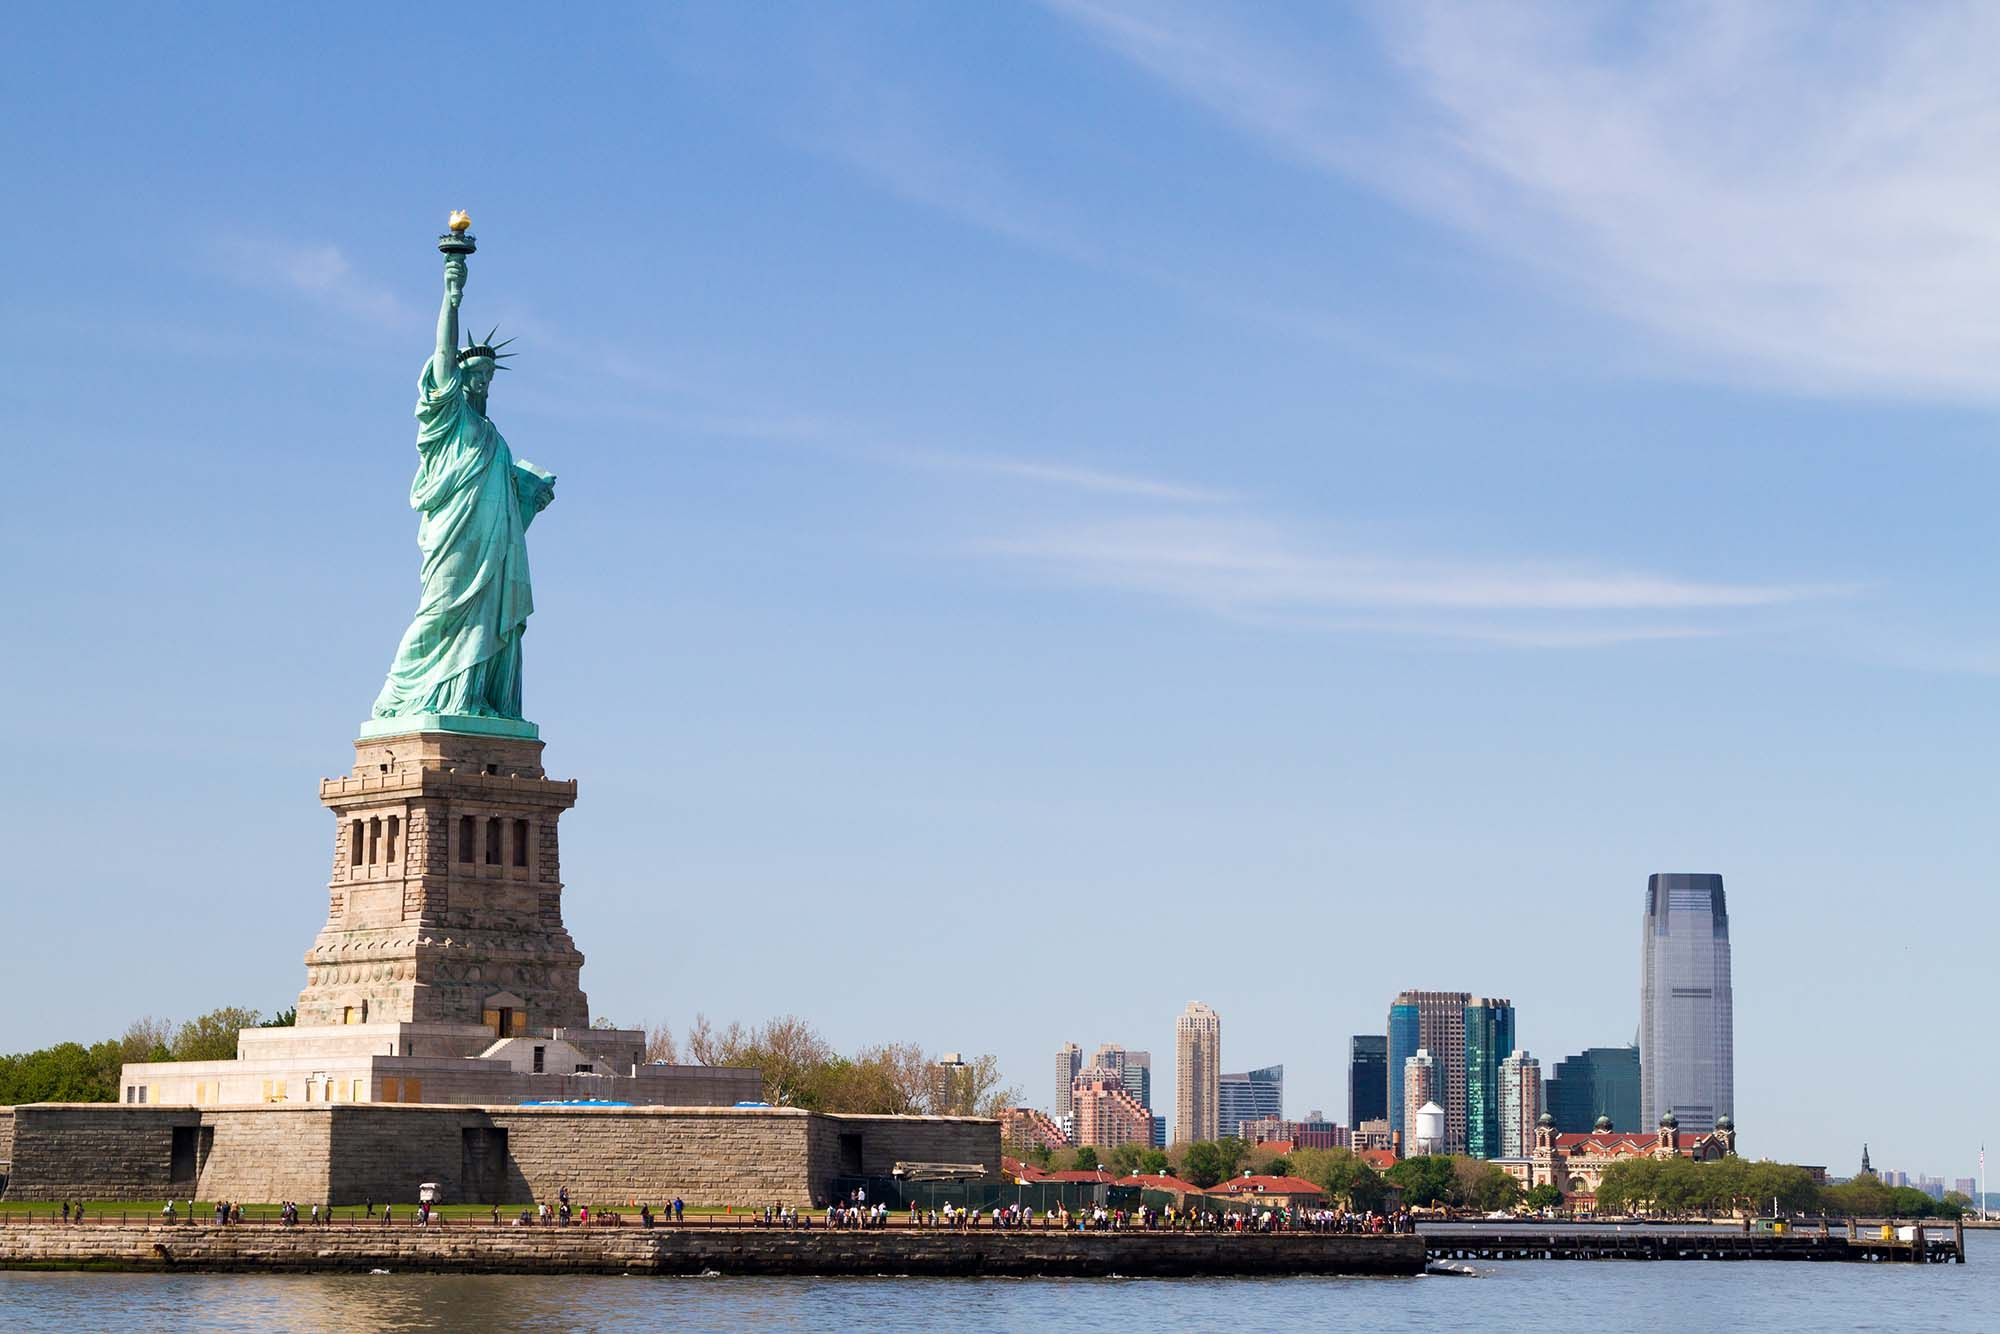 stachu of liberty.The Statue of Liberty is a colossal neoclassical sculpture on Liberty Island in the middle of New York Harbor, in Manhattan, New York City.Cheap Flights to New York.http://www.traveltrolley.co.uk